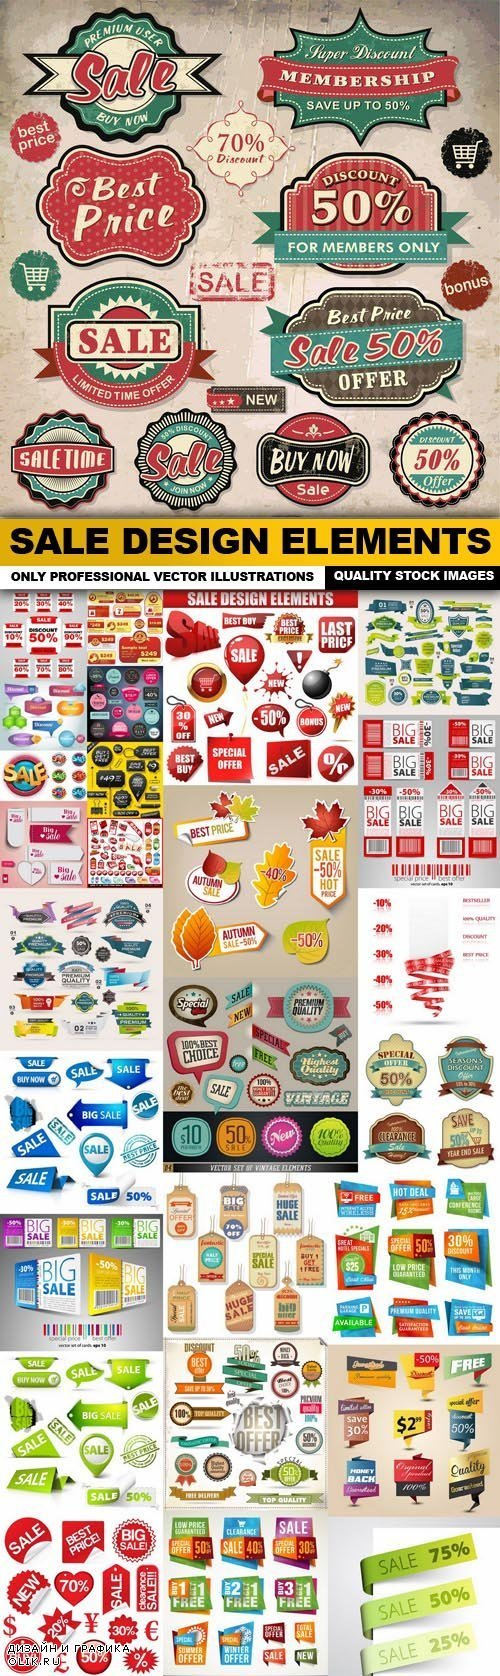 Sale Design Elements - 30 Vector